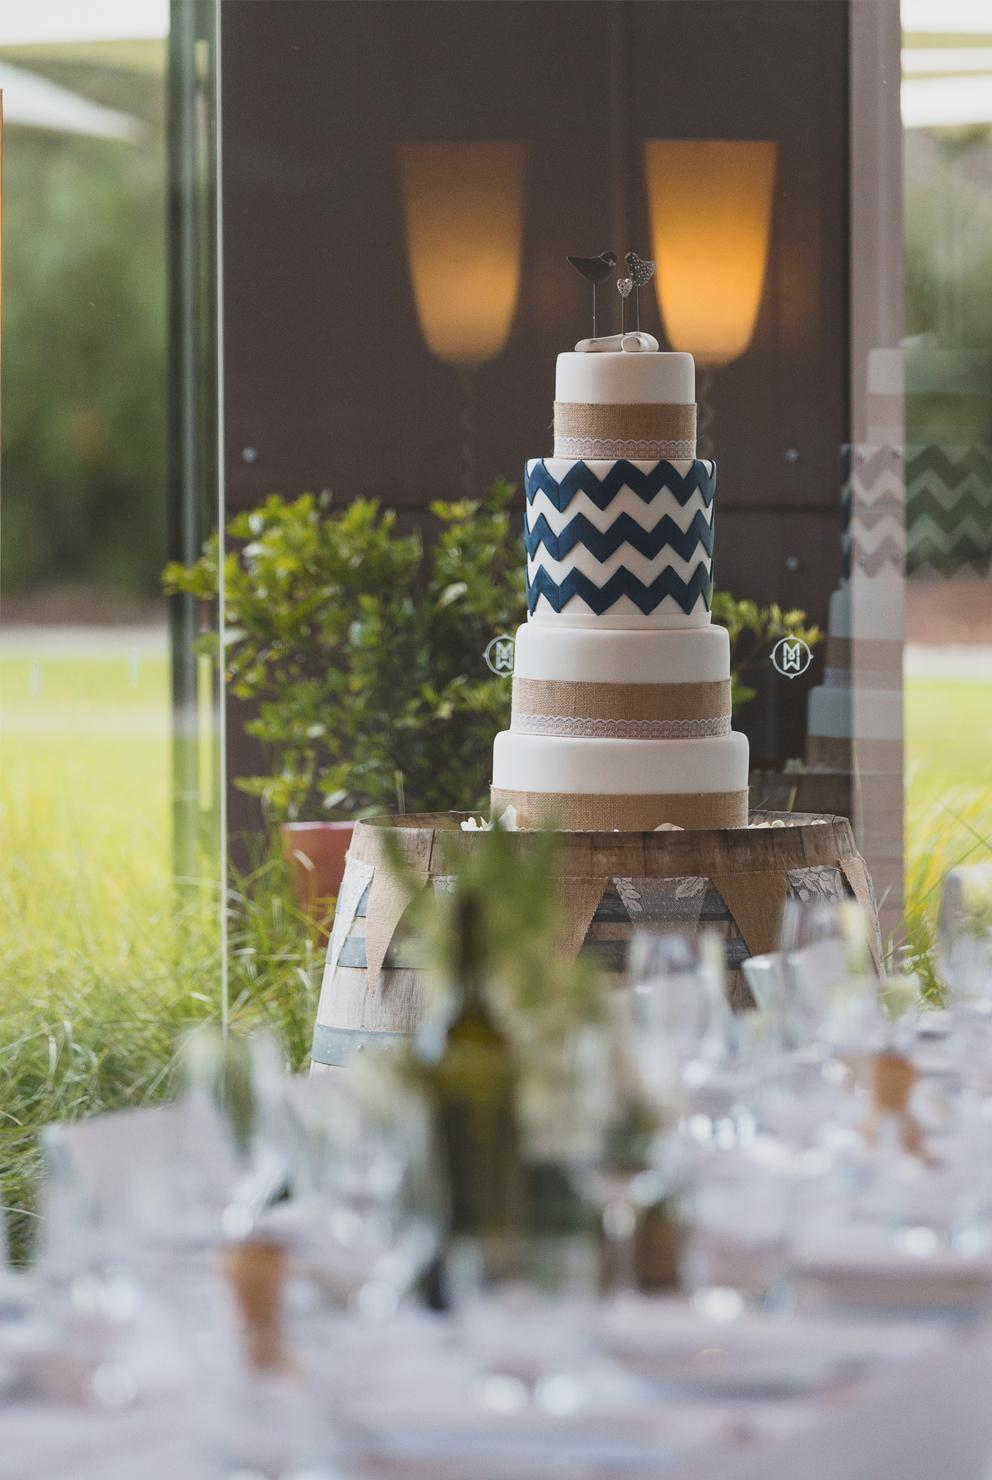 Yarra Valley Restaurants-Divino Ristorante-Wedding cake